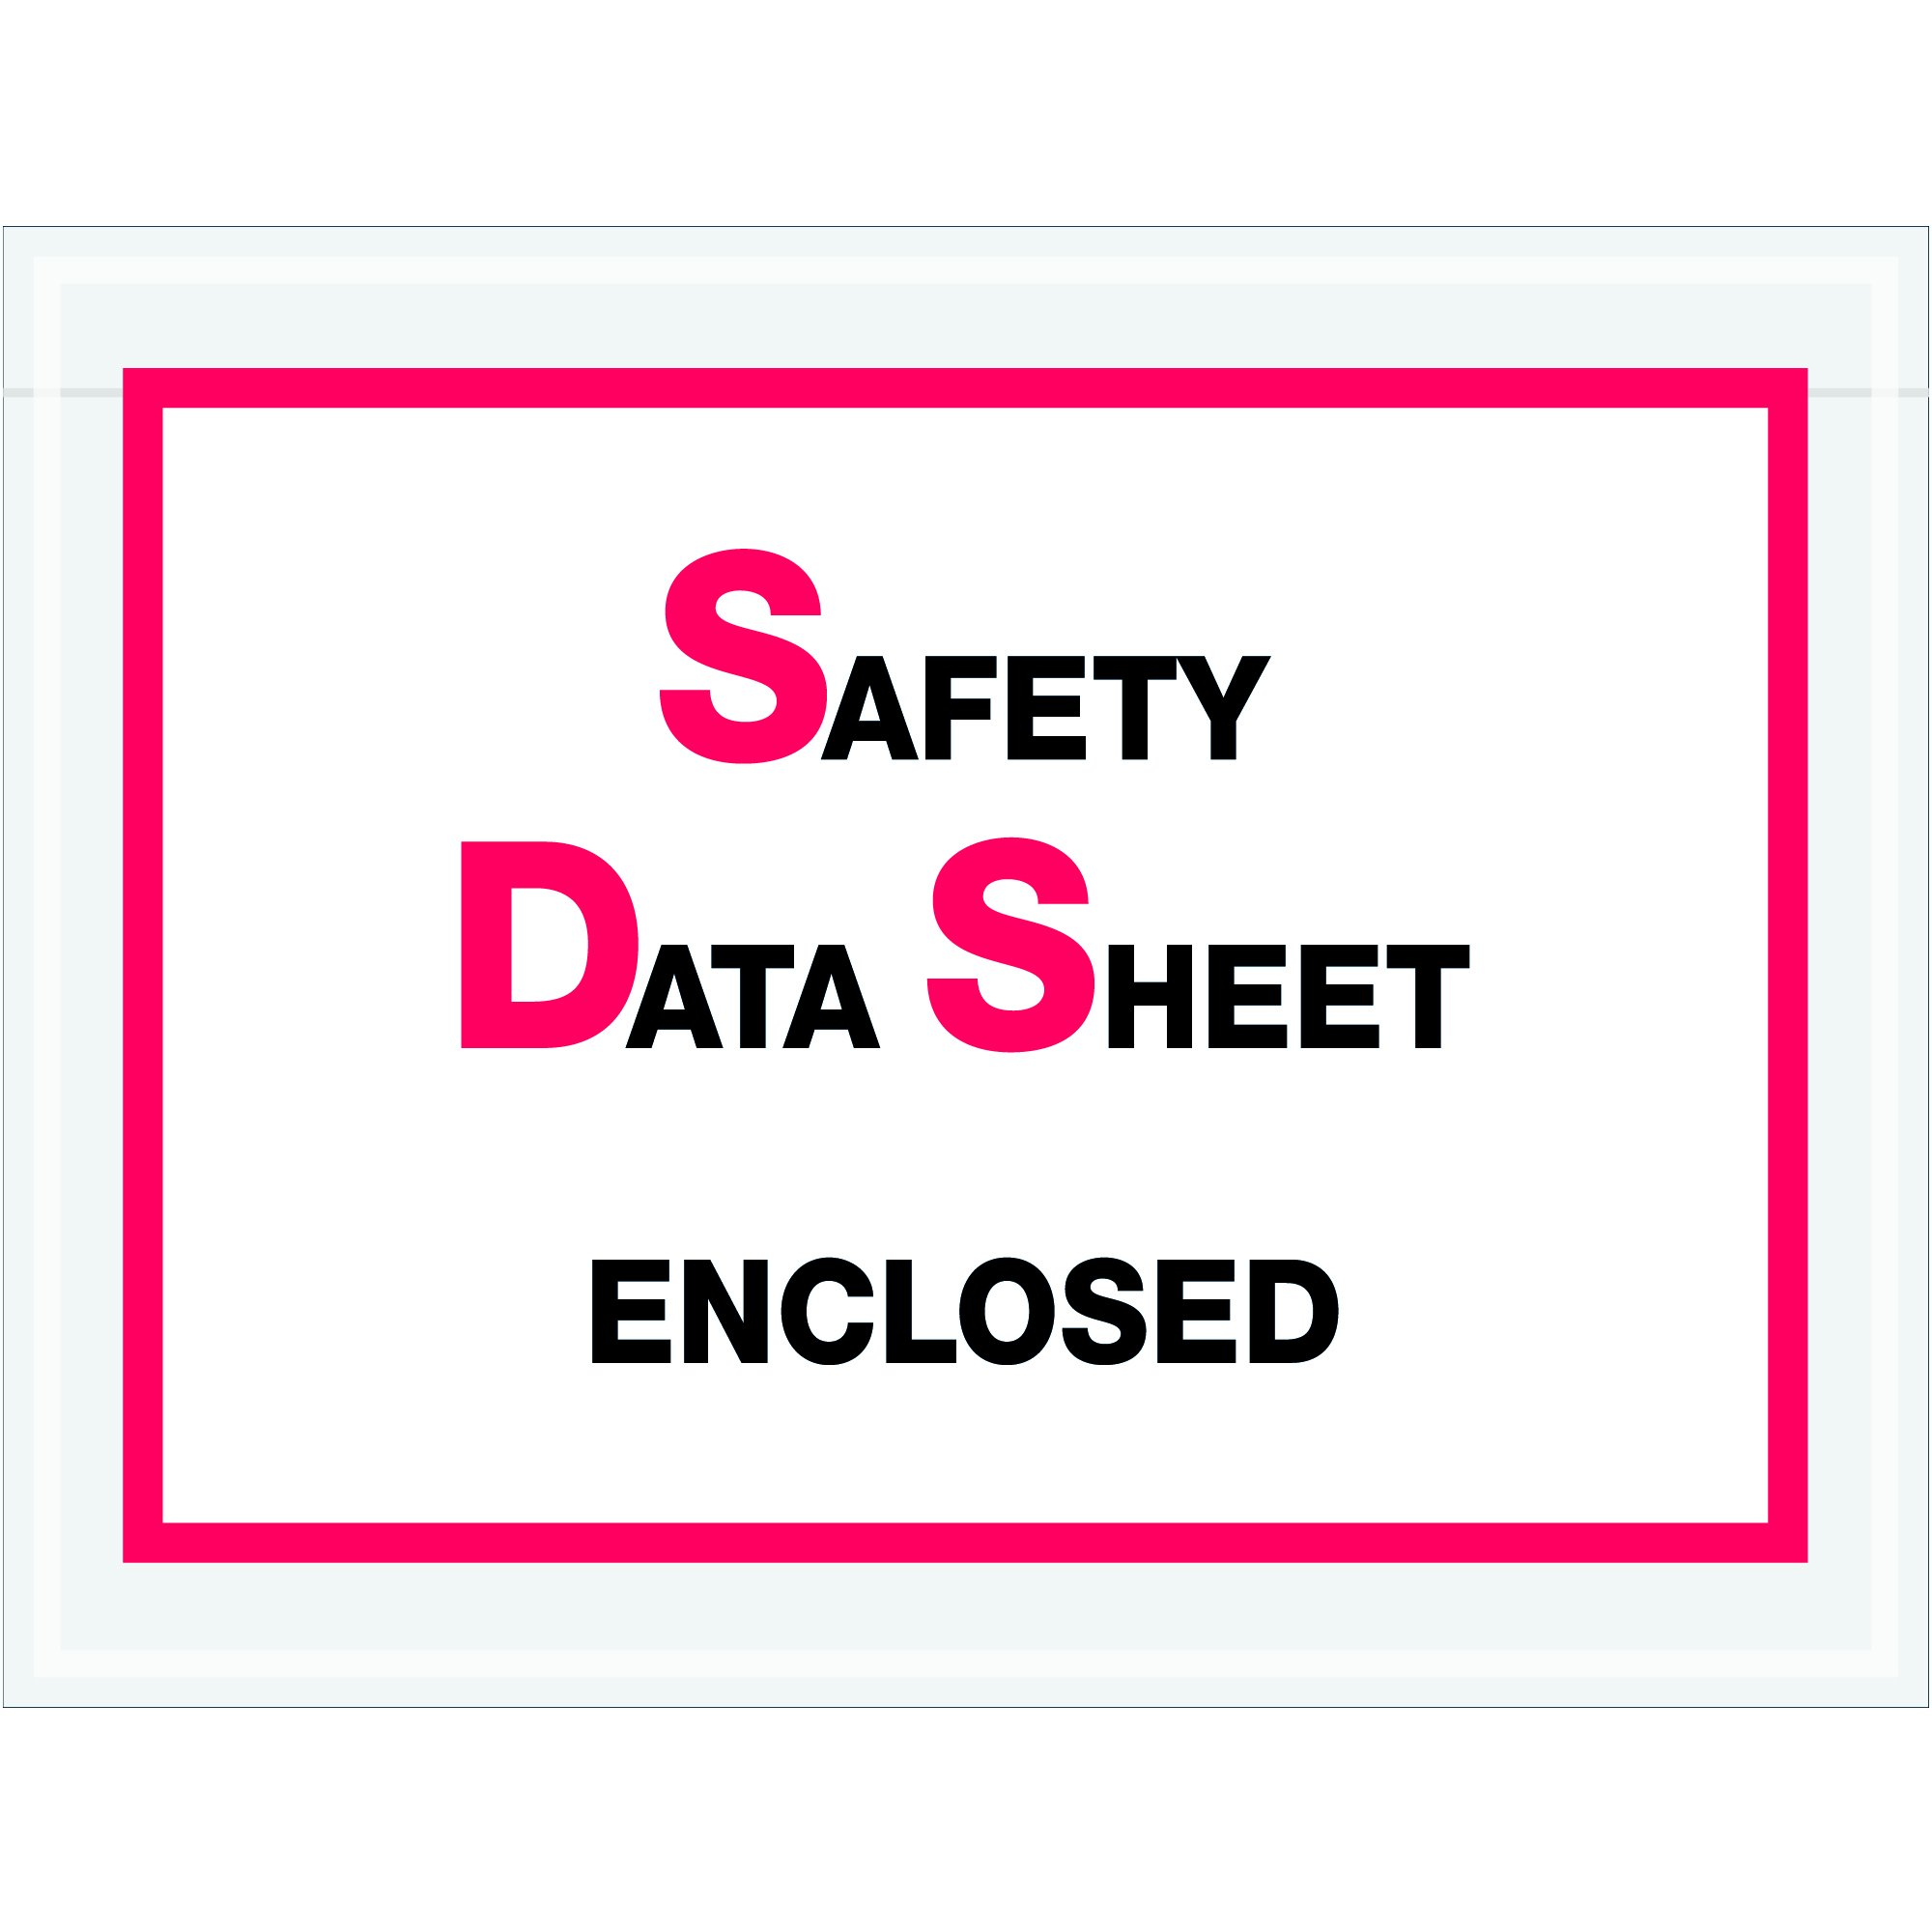 Tape Logic TLPL495''Safety Data Sheet Enclosed'' SDS Envelopes, 6 1/2'' x 5'', Printed Clear (Pack of 1000) by Tape Logic